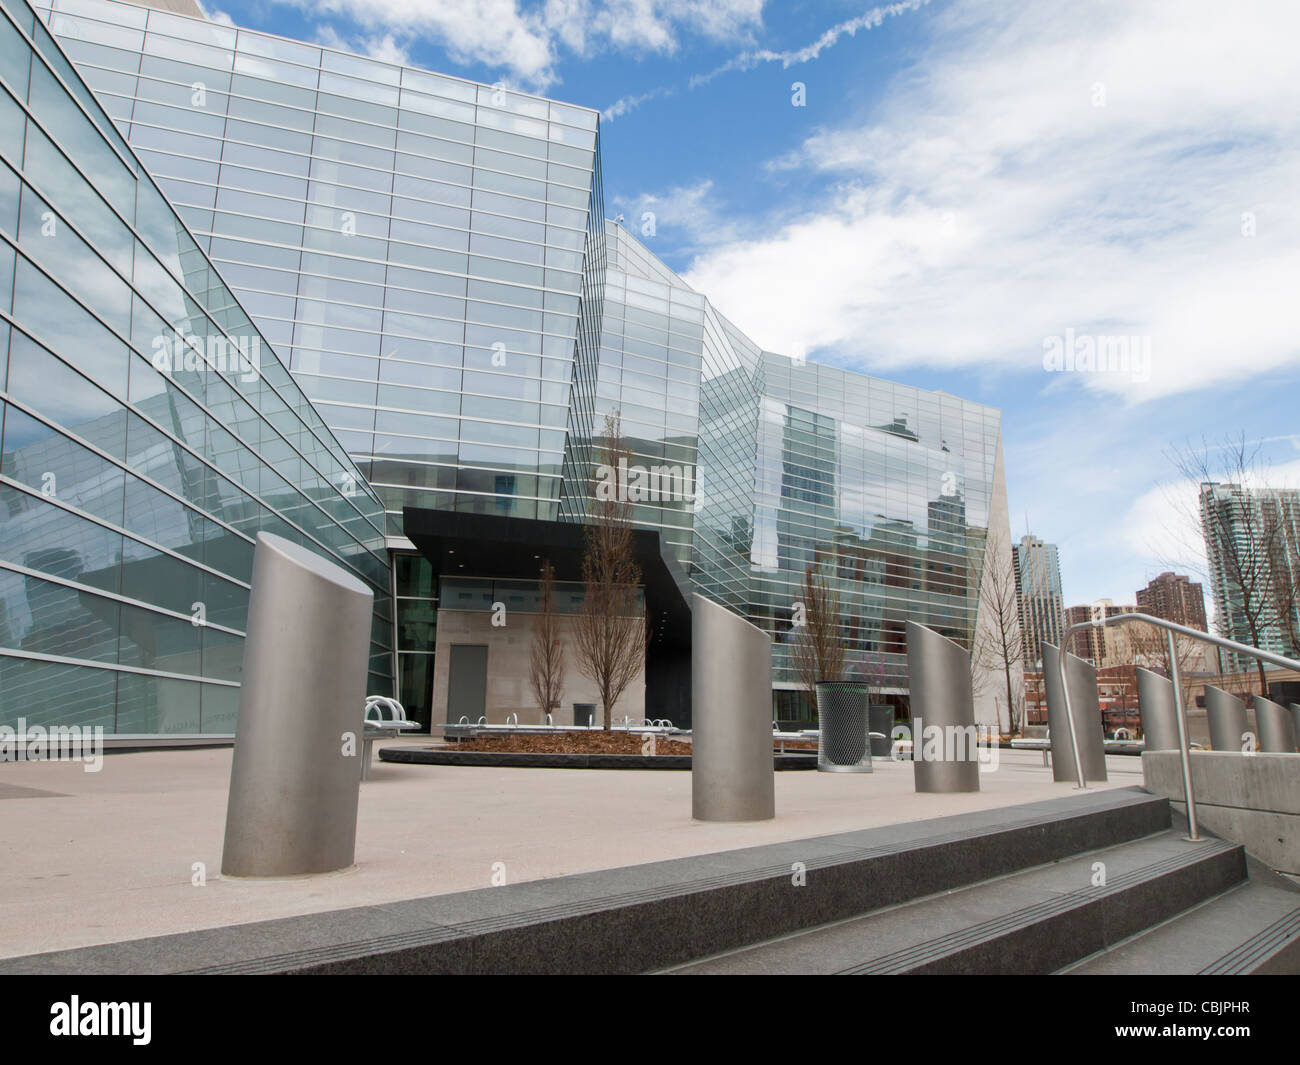 Exterior elevation of the Lindsey-Flanigan Courthouse in Downtown Denver. - Stock Image